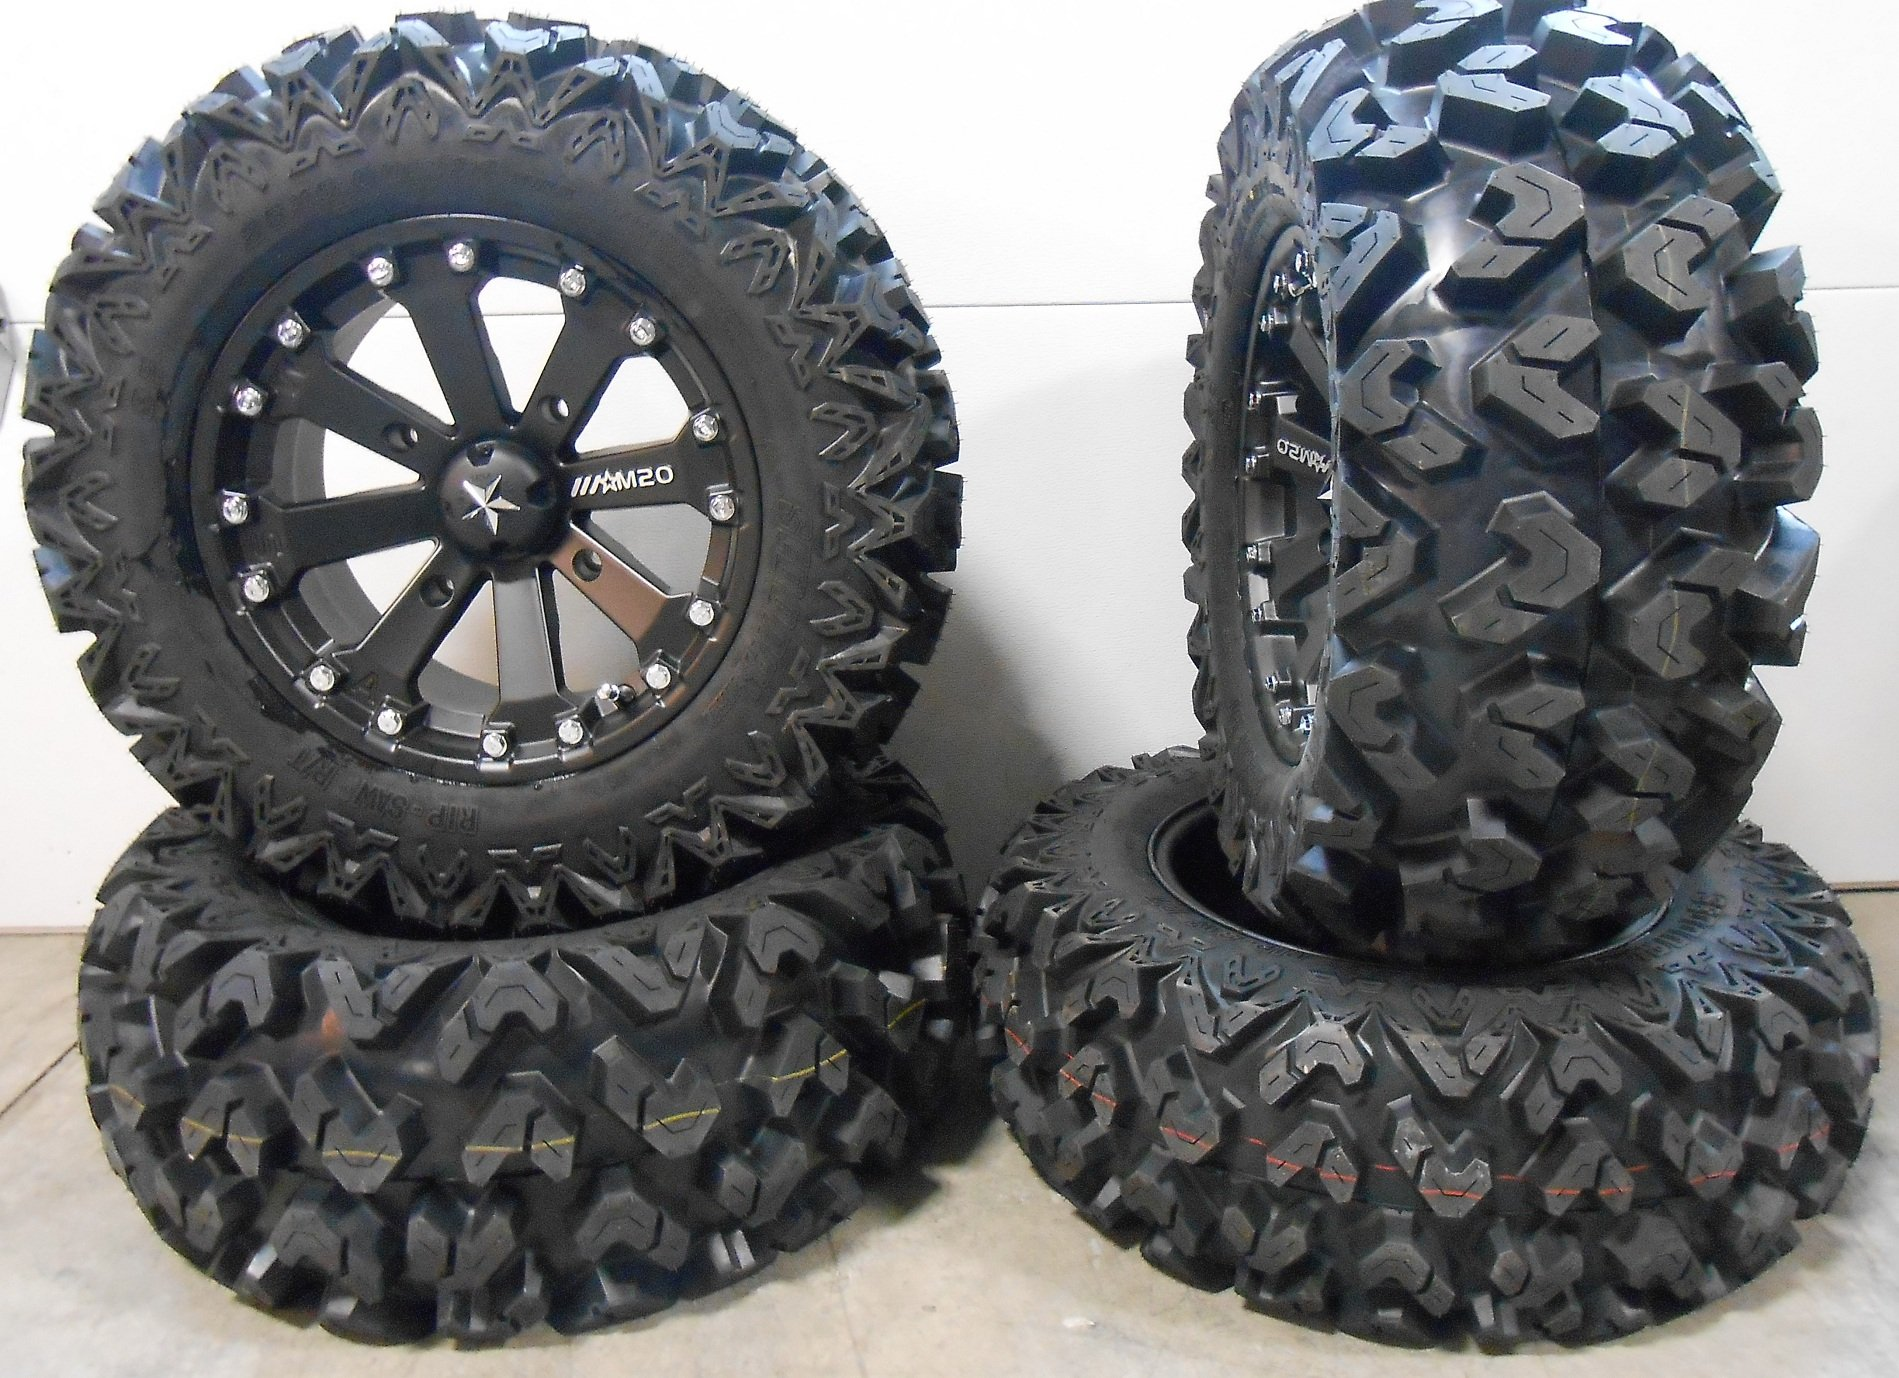 Bundle - 9 Items: MSA Black Kore 14'' ATV Wheels 26'' Rip Saw Tires [4x110 Bolt Pattern 10mmx1.25 Lug Kit]